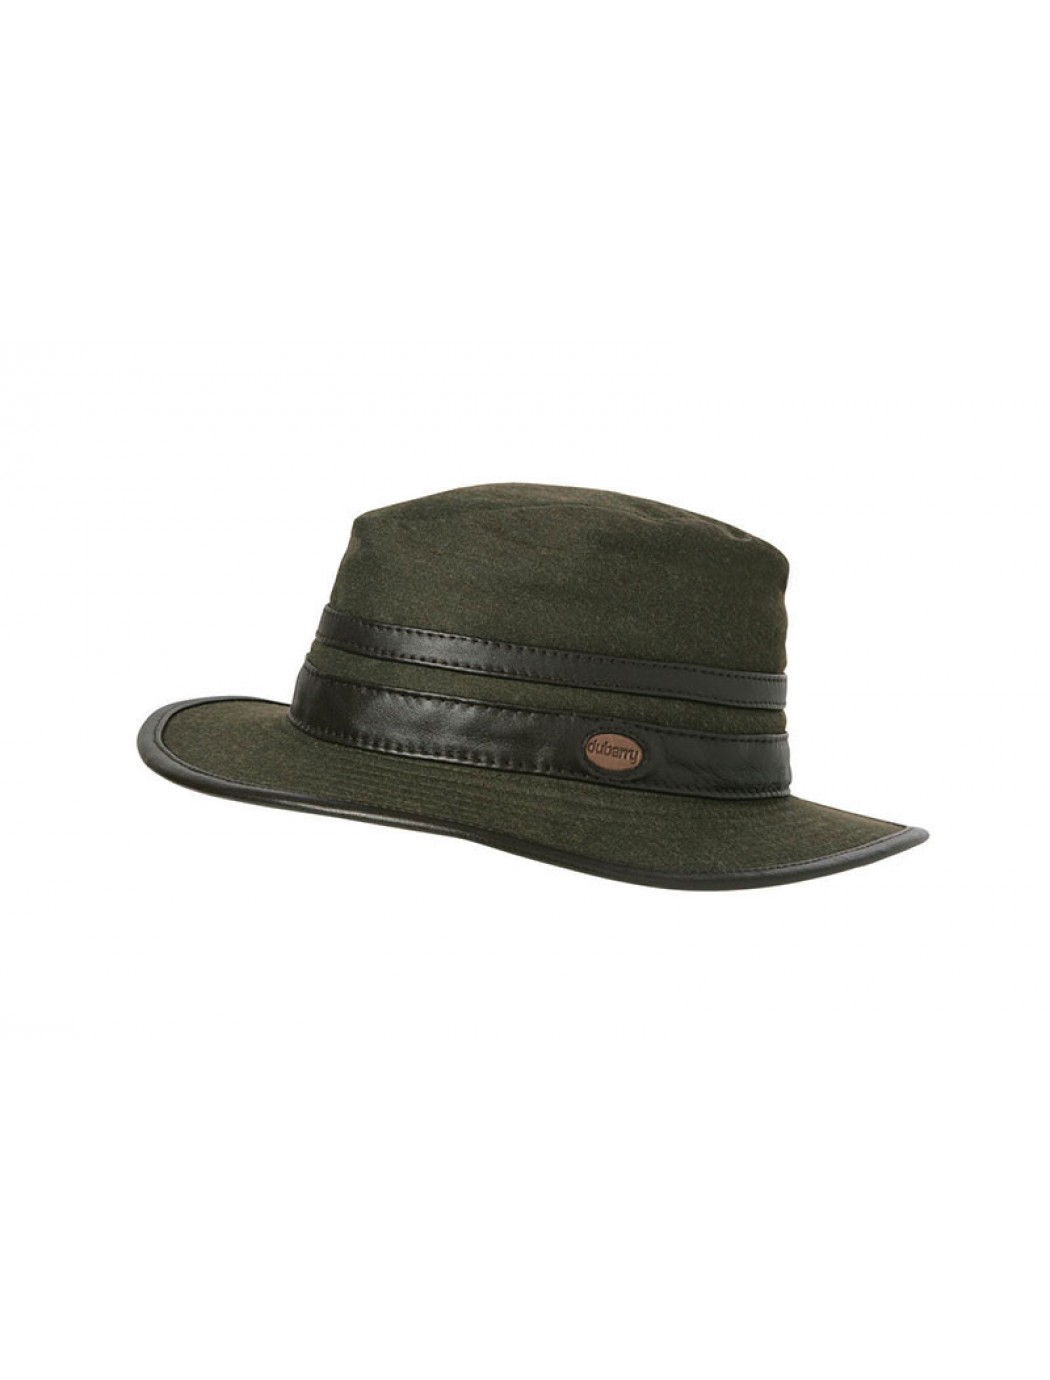 butler-socks-headwear-scaves-dark-olive 3